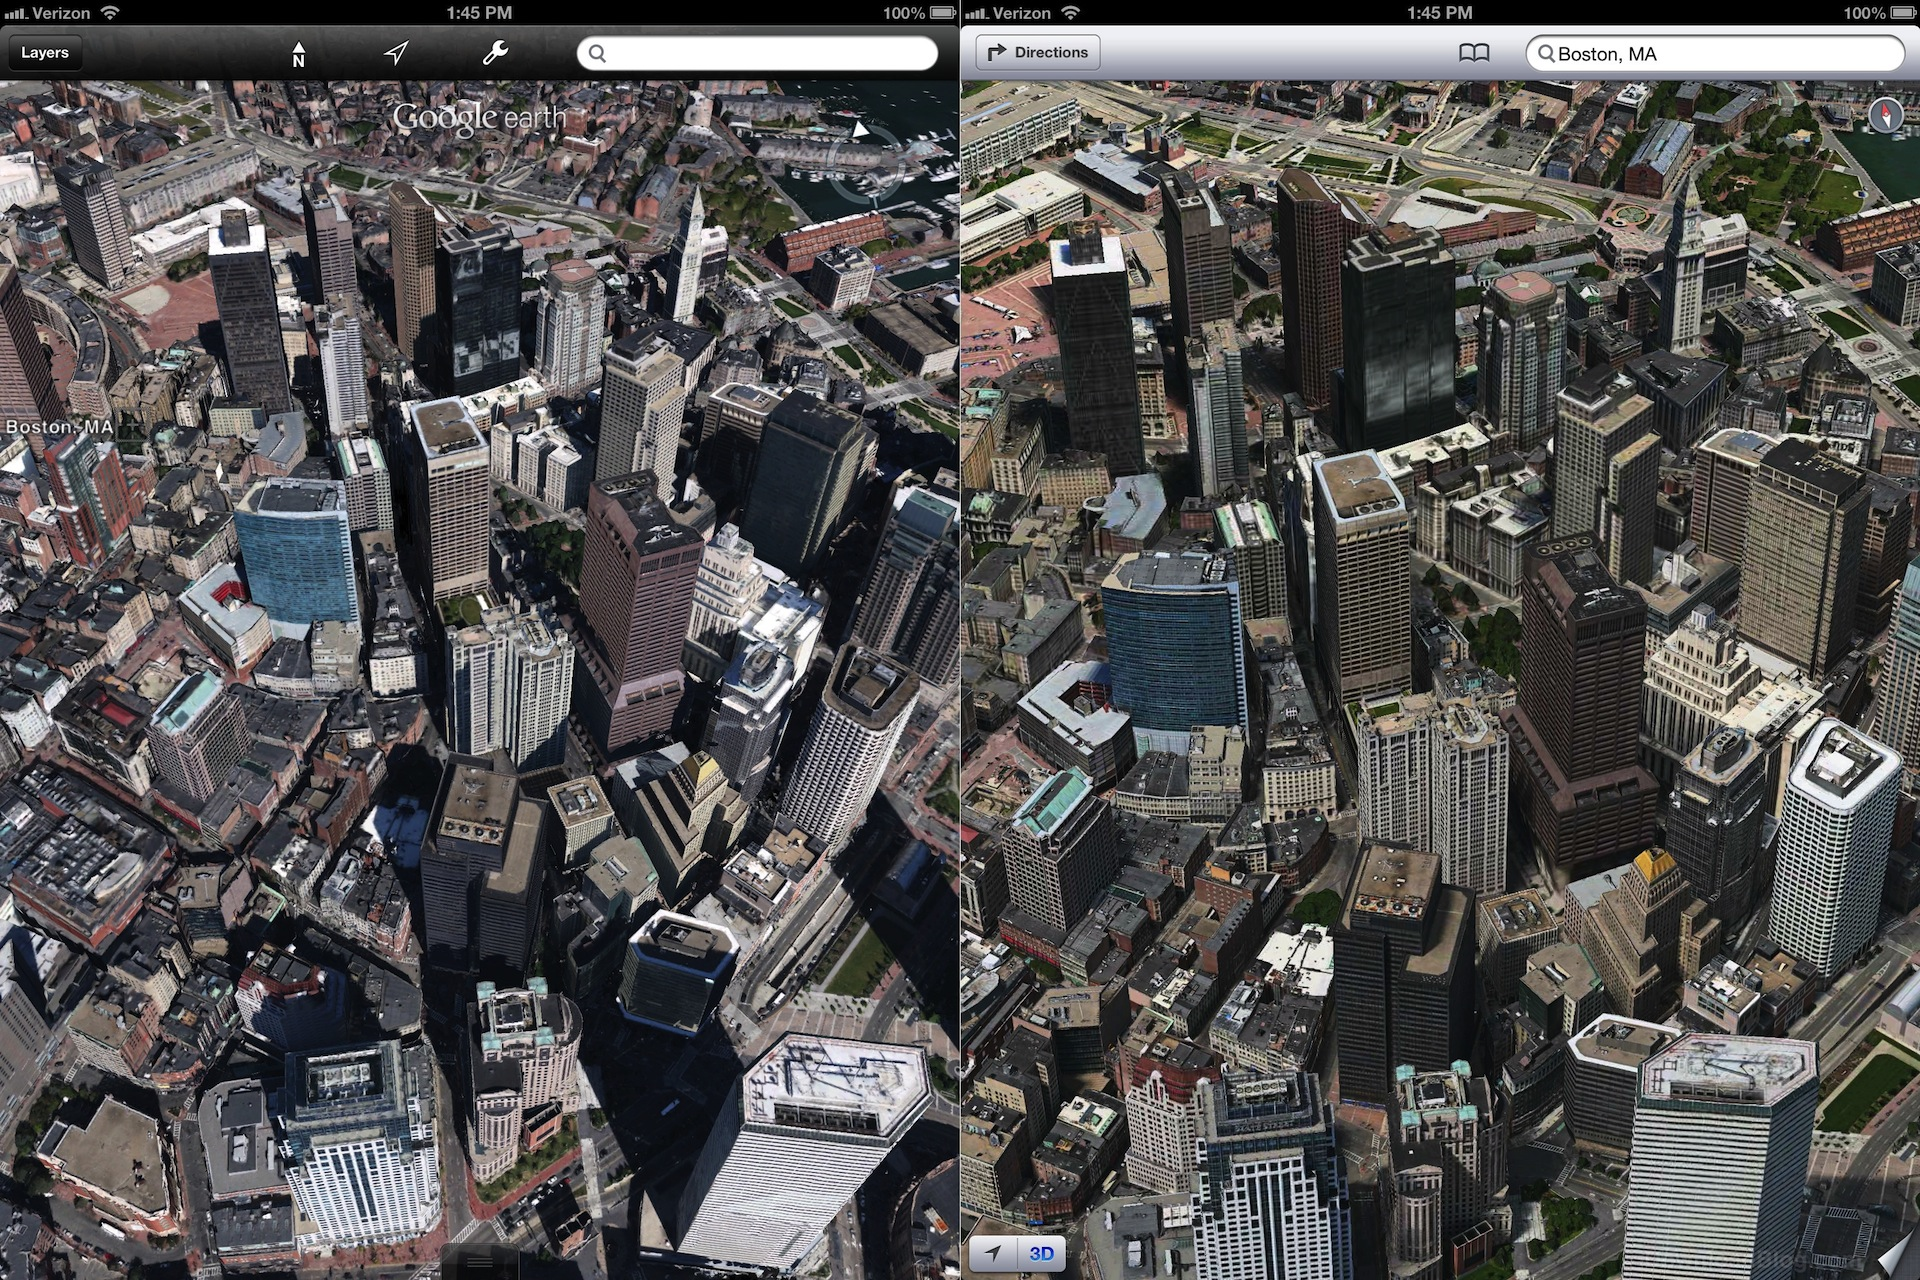 Apple's 3D maps look much better than Google's